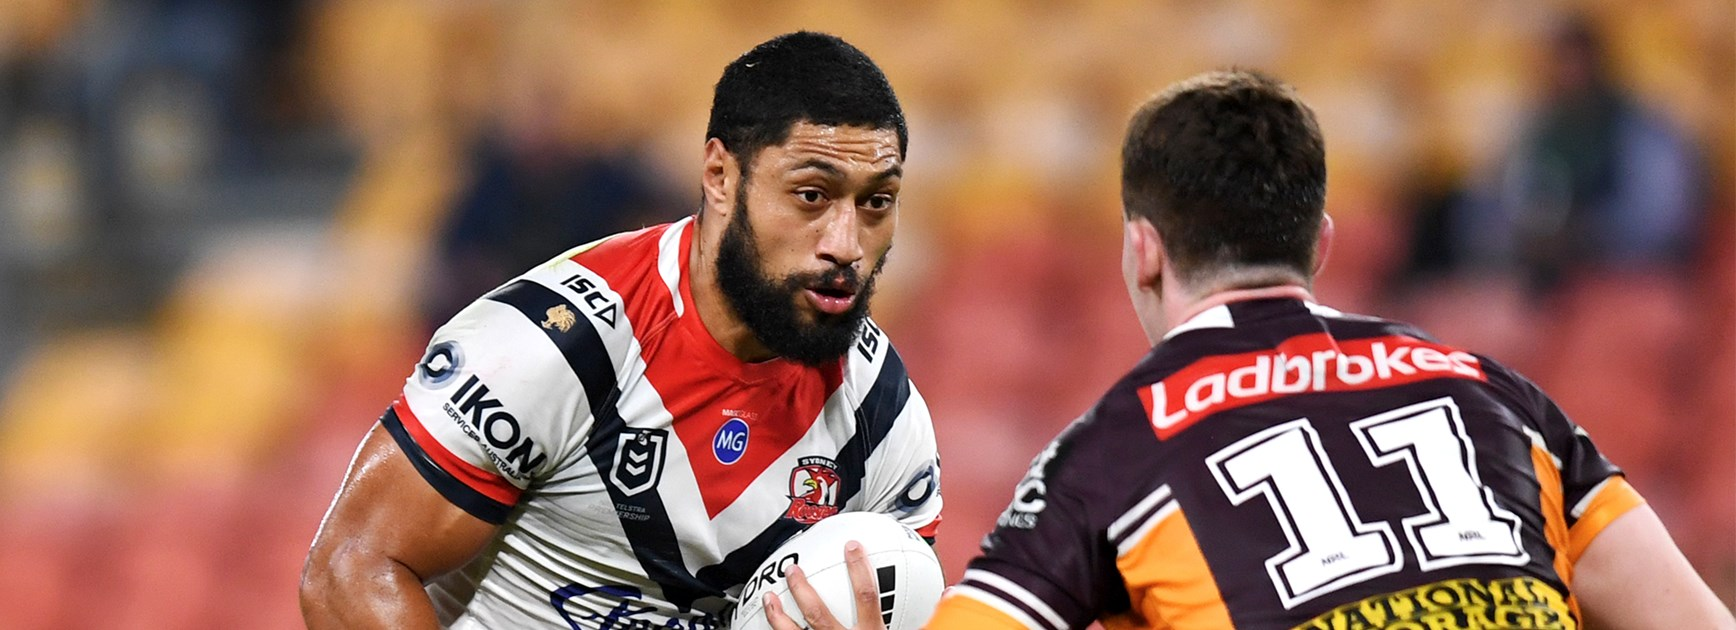 Match Preview | Roosters v Broncos